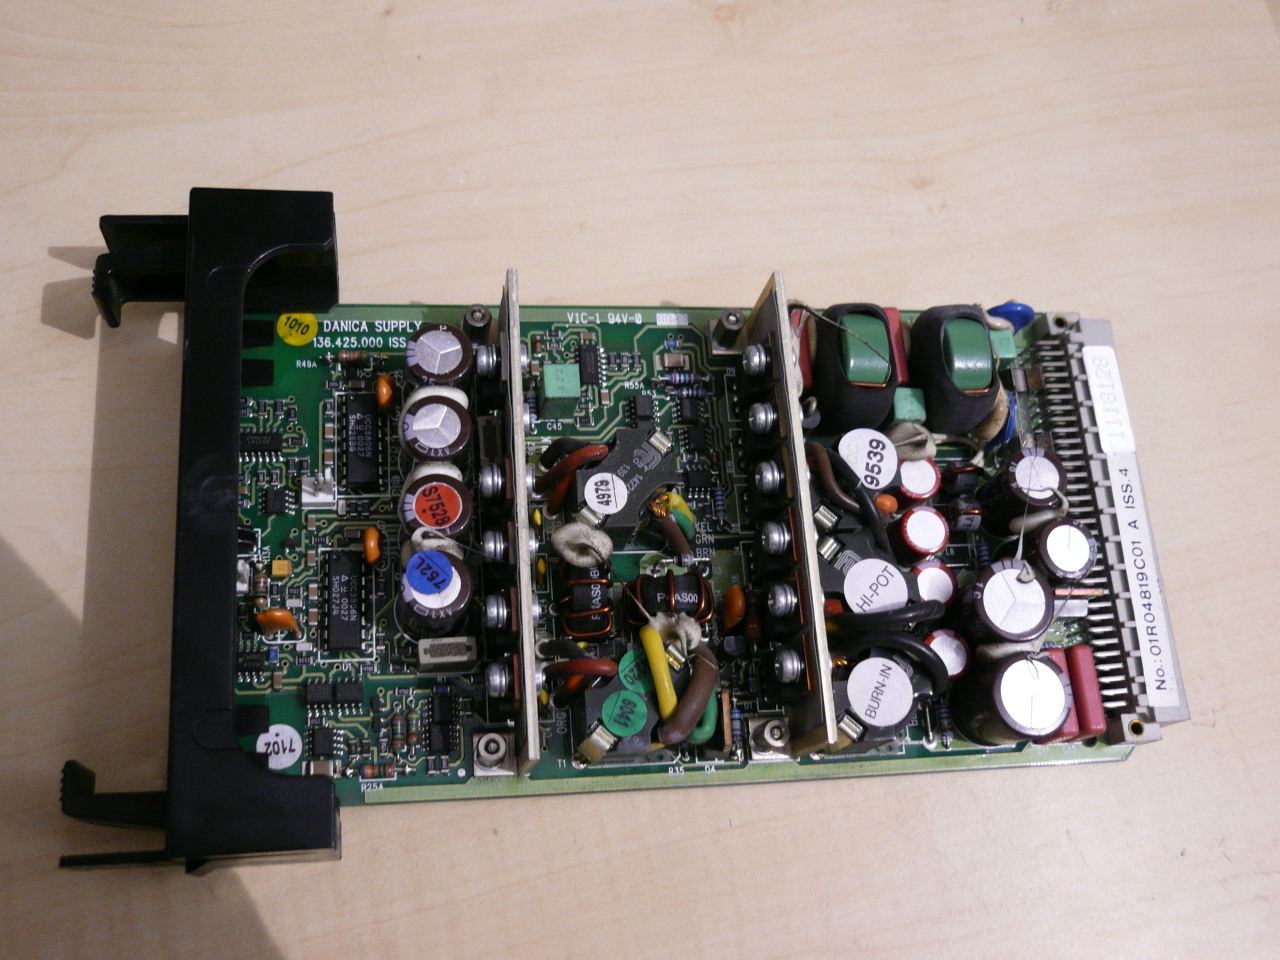 BPSM (power supply for digital modules)